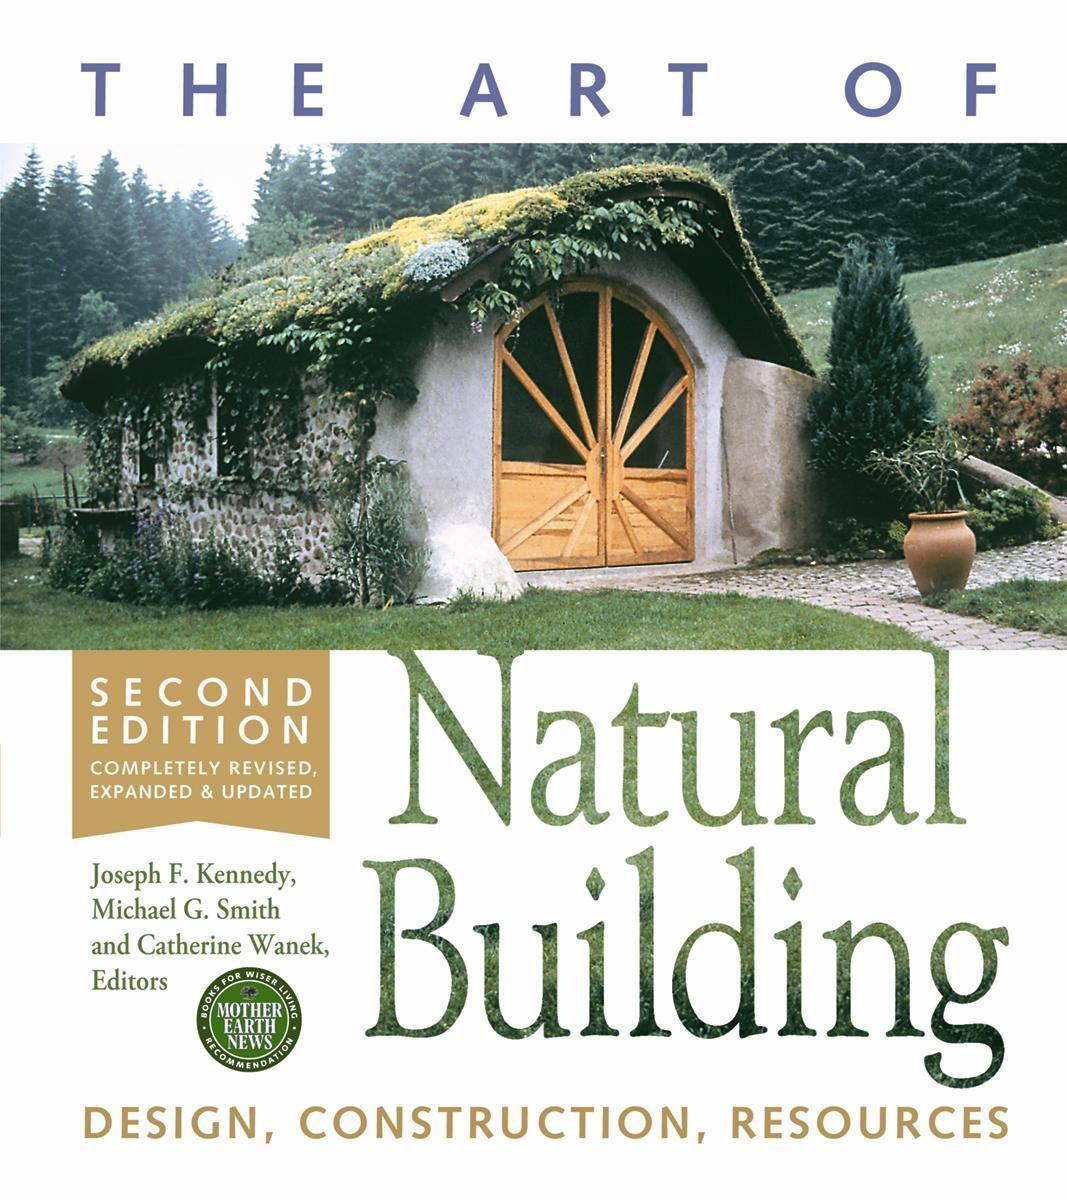 The Art of Natural Building: Design, Construction, Resources PDF